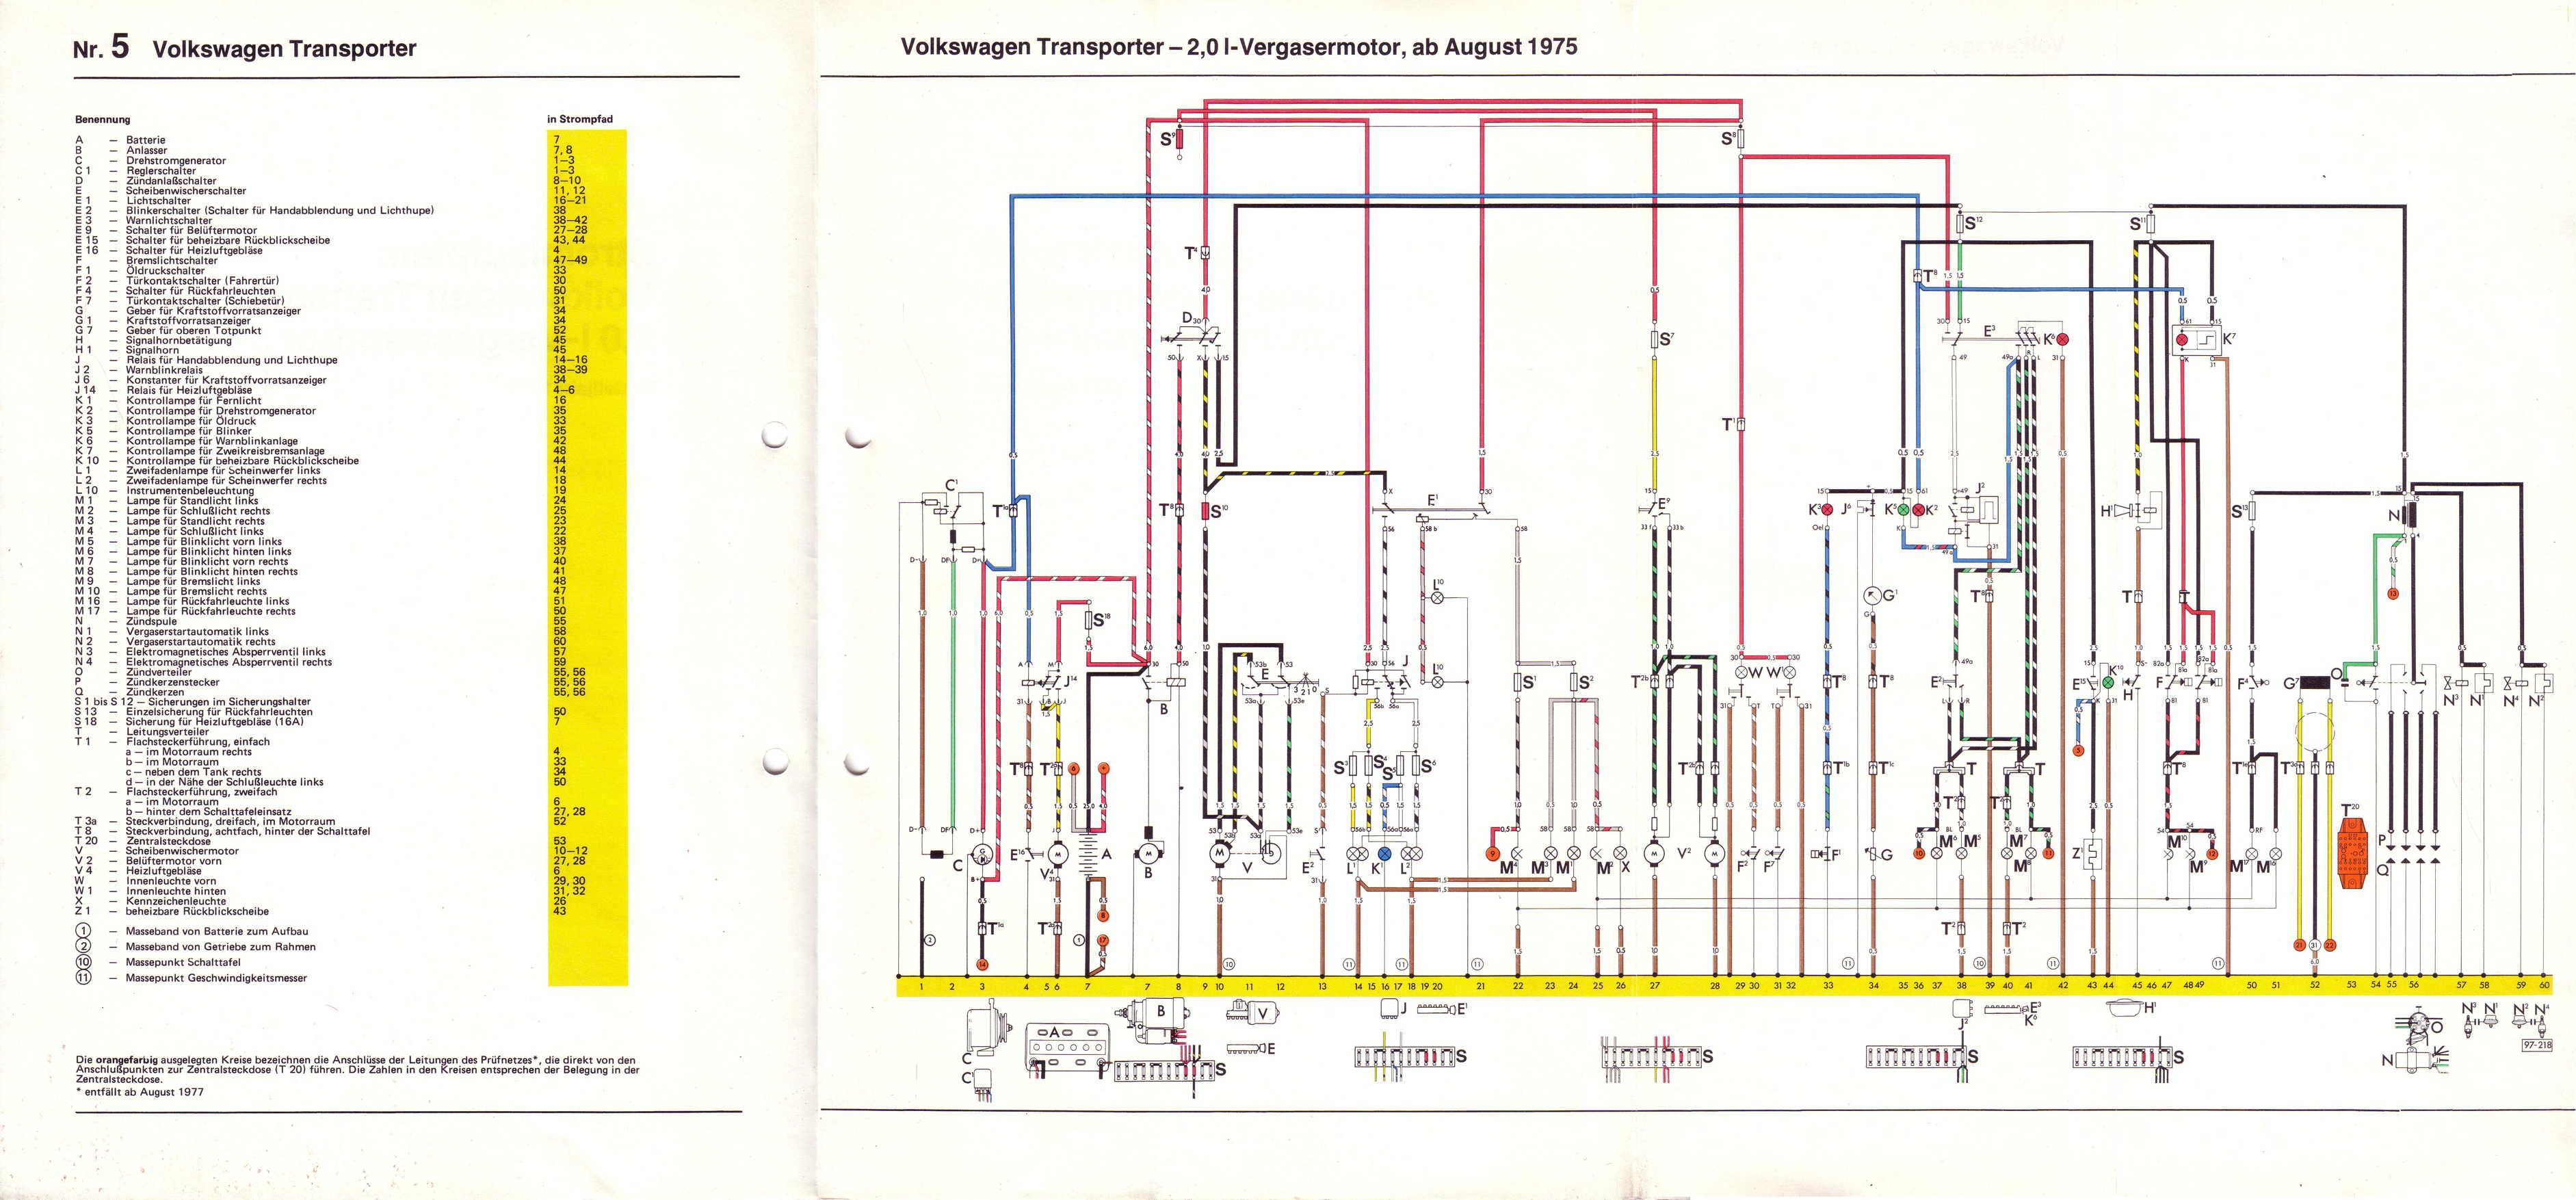 1975 08 vw t2 2l wiring diagram?resize\\\\\\\\\\\\\\\\\\\\\\\\\\\\\\\\\\\\\\\\\\\\\\\=665%2C310 joliet jake wiring diagram,jake \u2022 limouge co  at eliteediting.co